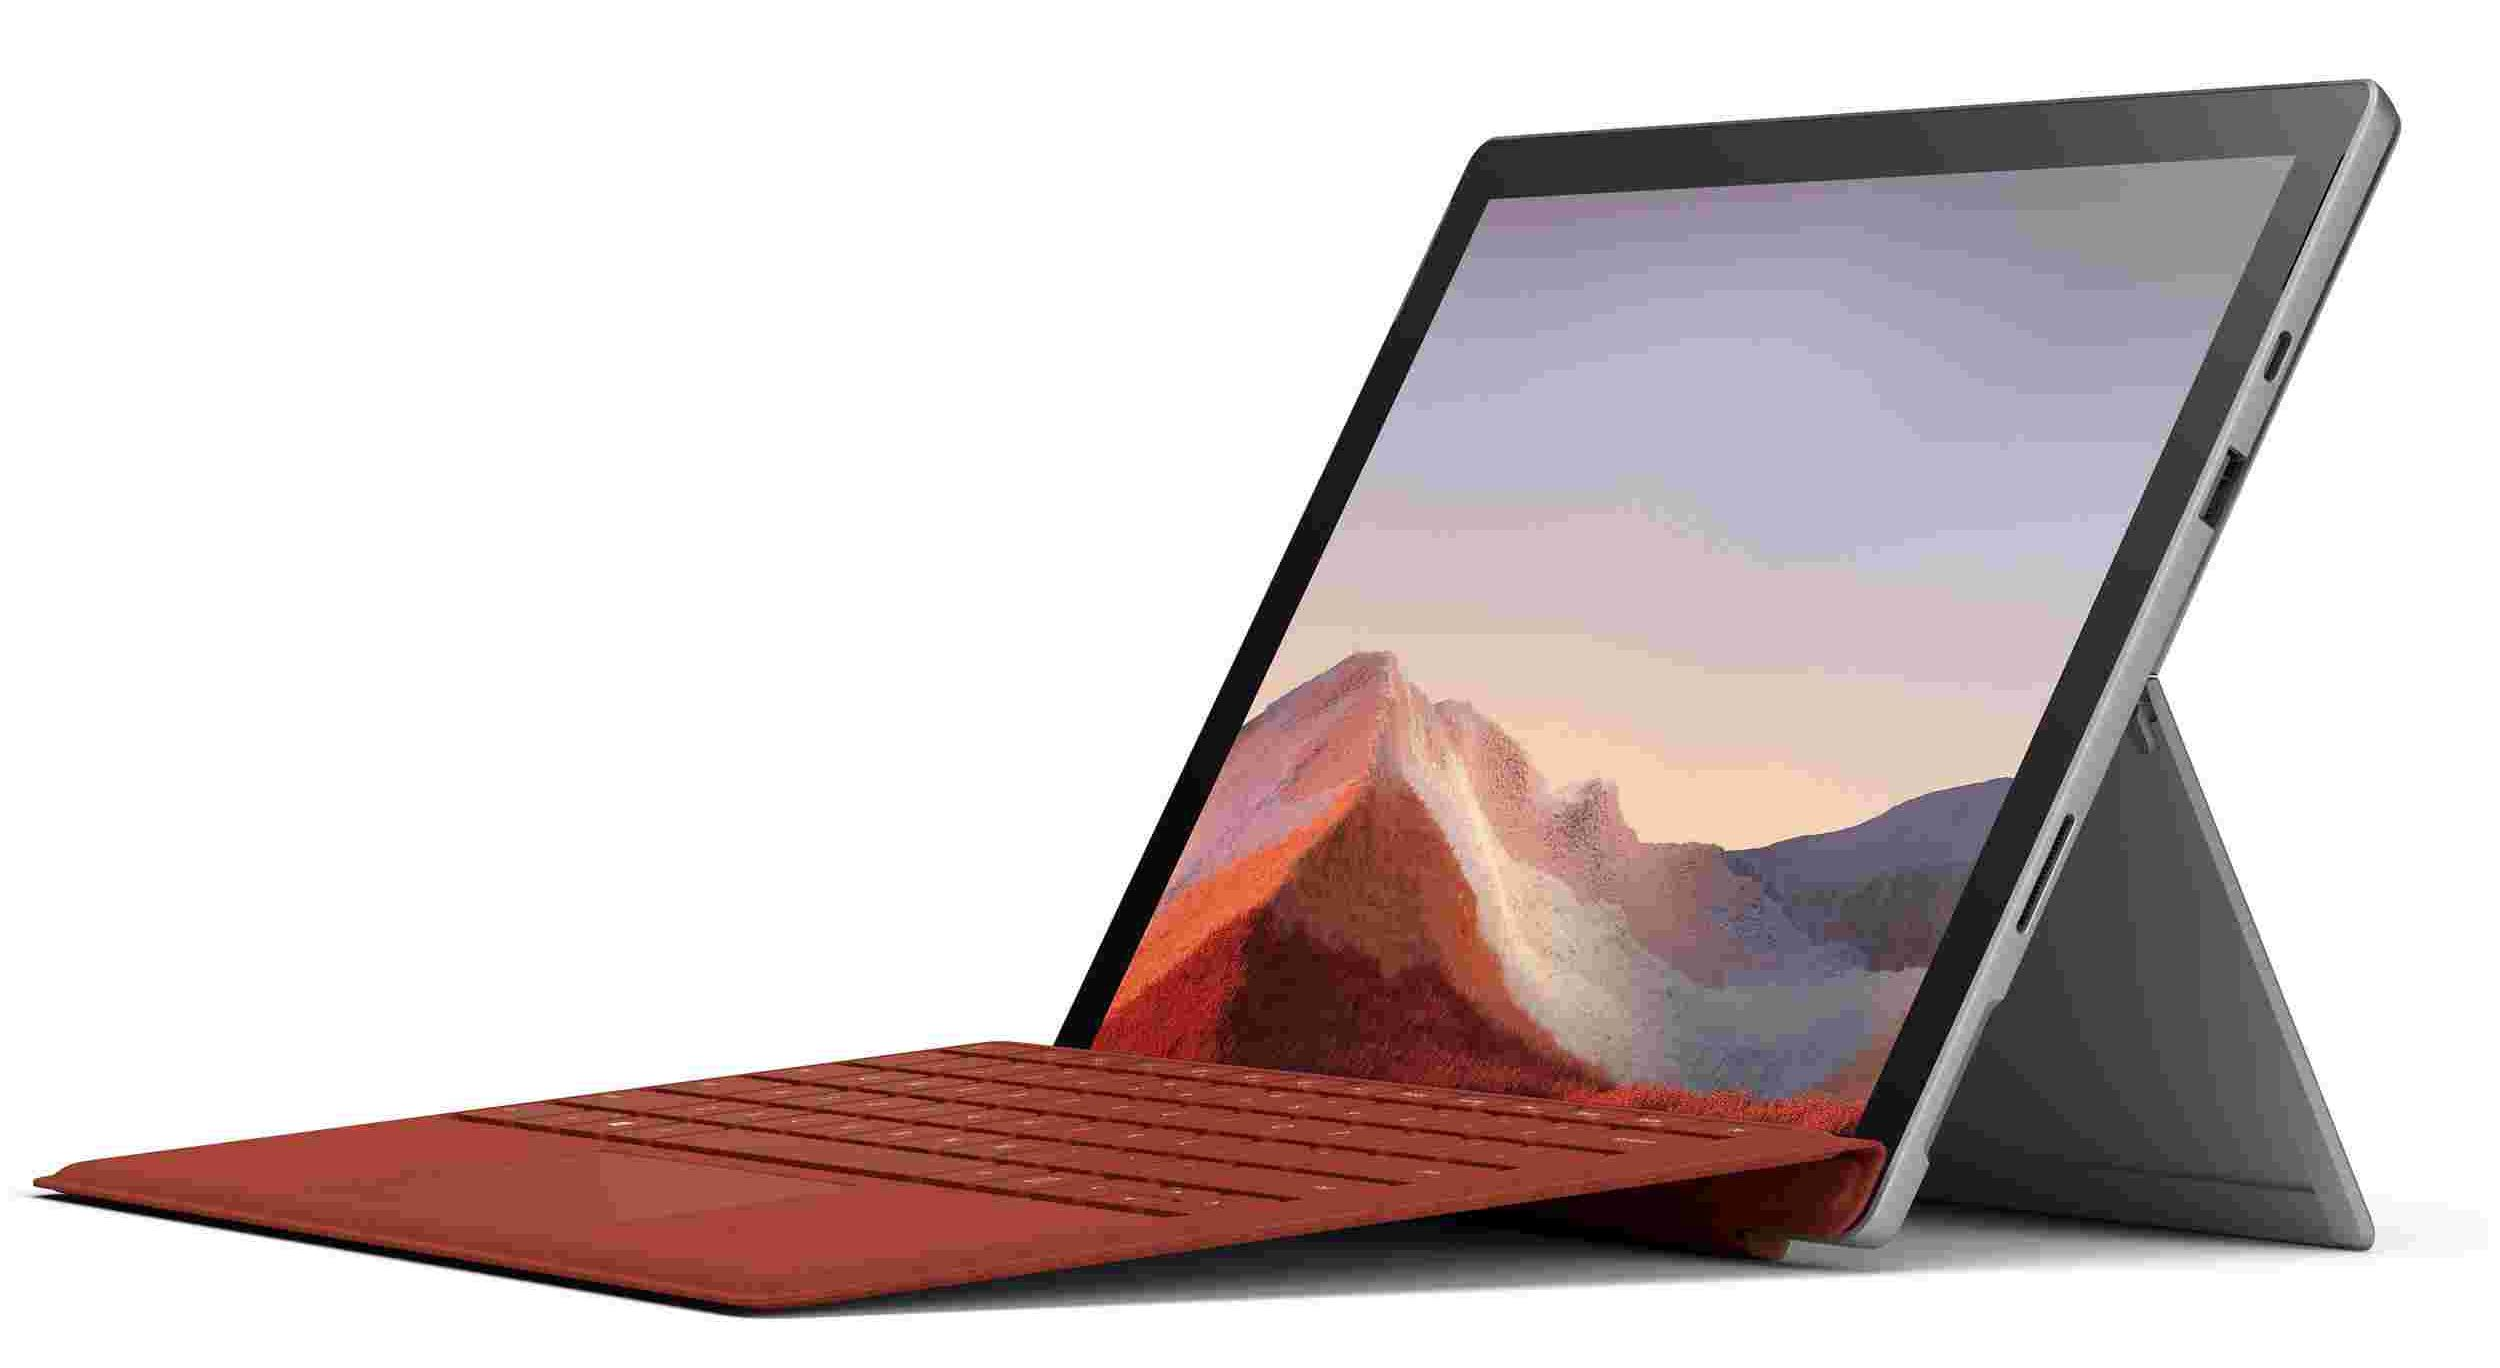 Deal: Get Microsoft Surface Pro 7 + Black Pro Type Cover for just $599